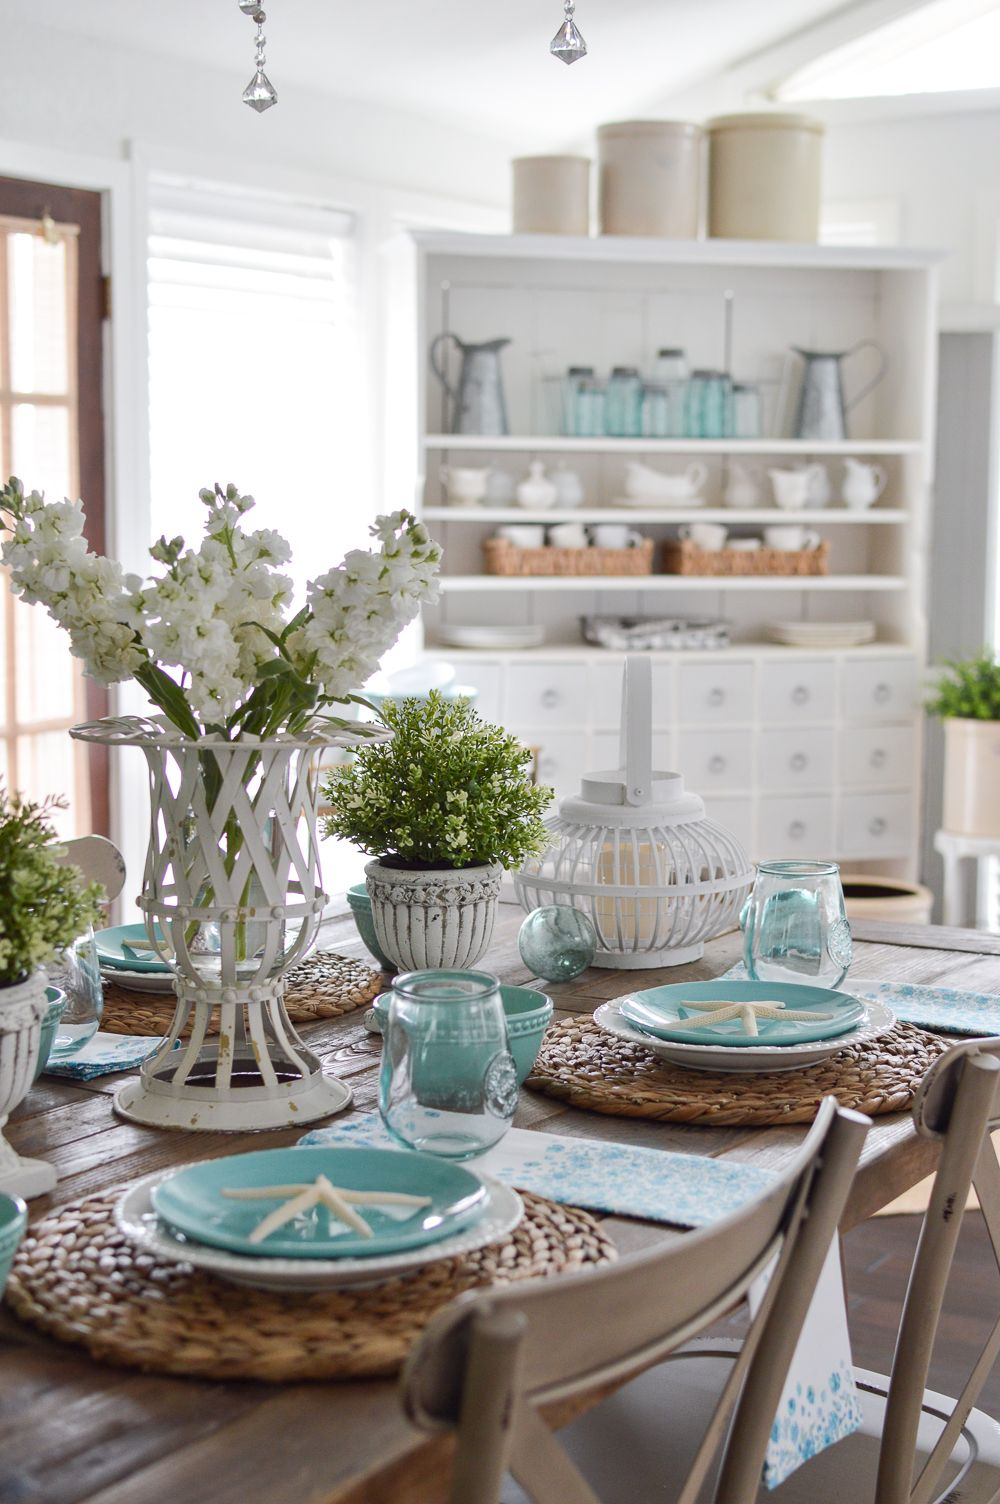 Simple Summer Decorating Ideas Dining Room Table Centerpieces Dining Room Centerpiece Farmhouse Table Decor